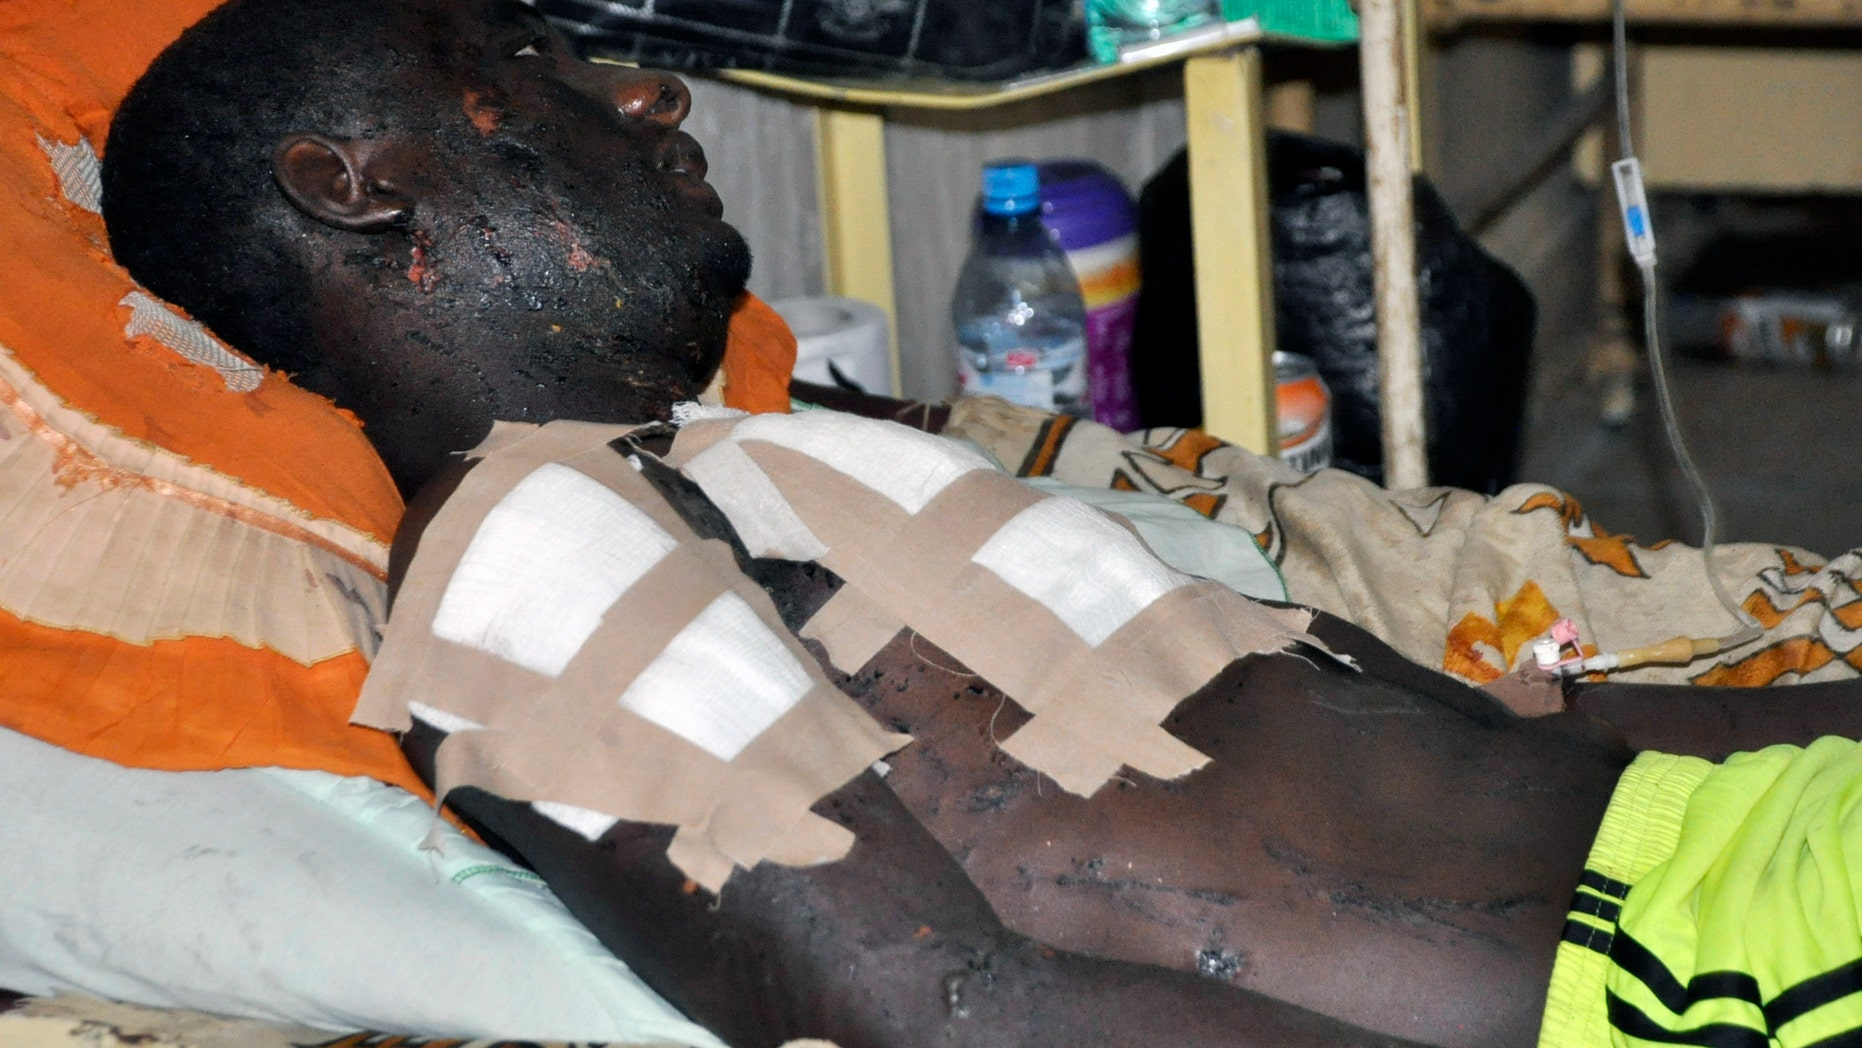 Nov. 30, 2014 - A victim of Friday's bomb explosion recuperates at the Murtala Muhammed specialist hospital, in Kano, Nigeria. More than 102 people were killed in the bomb explosions at the central mosque in the city Friday. Suspected Islamic extremists struck 2 state capitals in northeastern Nigeria Monday, with twin blasts at a crowded market and a police base.